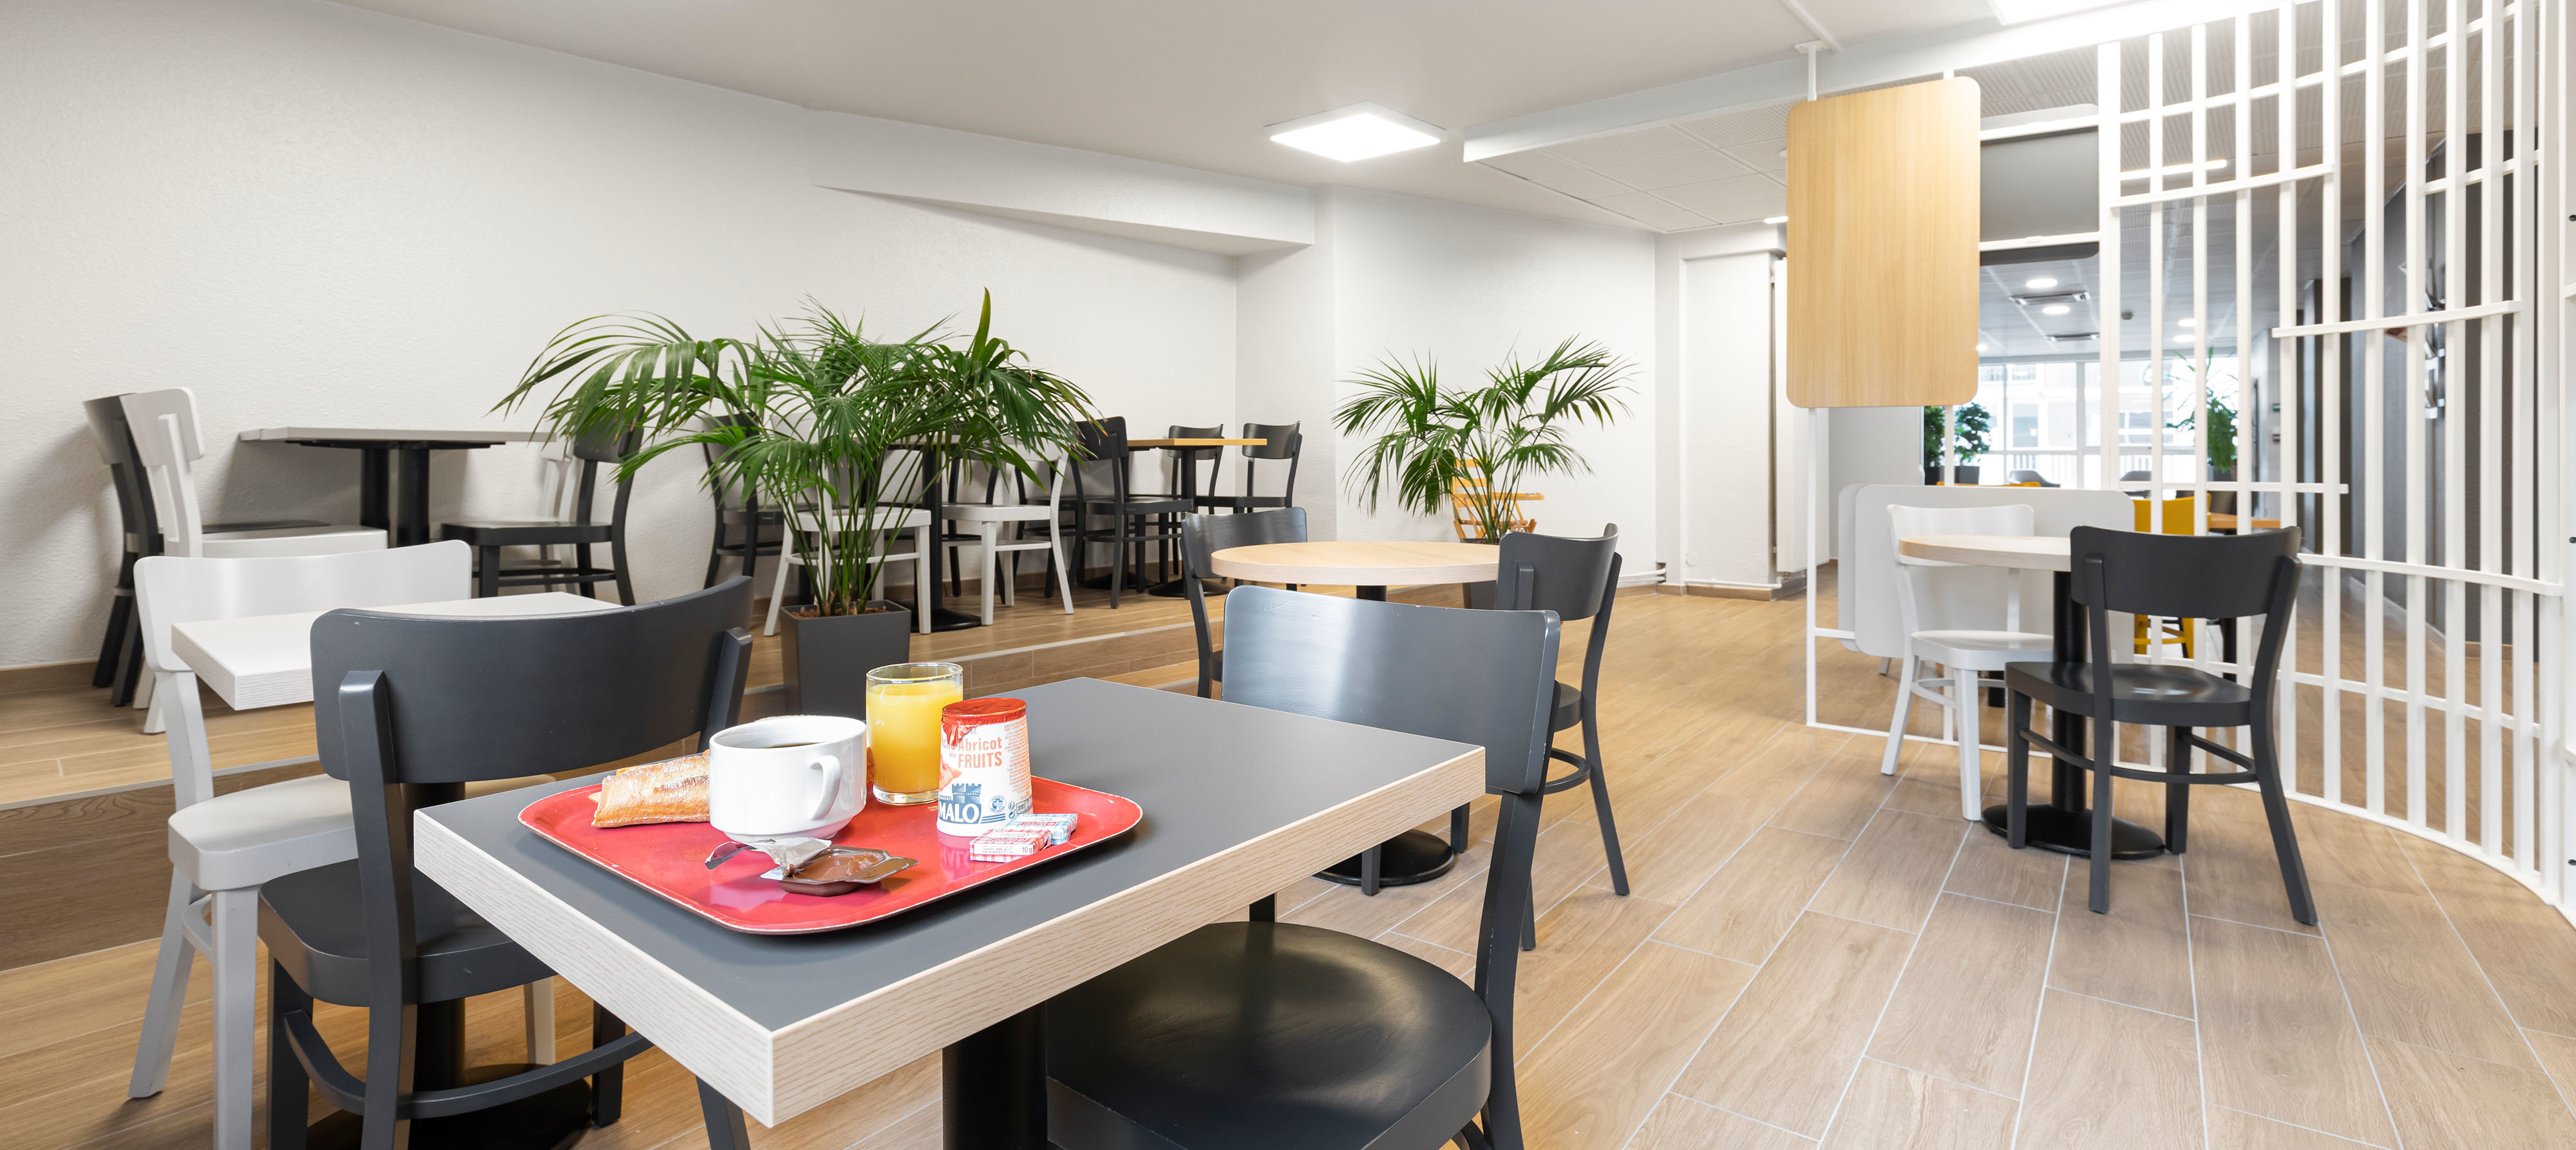 Book An Affordable Hotel In The Center Of Lyon B B Hotel